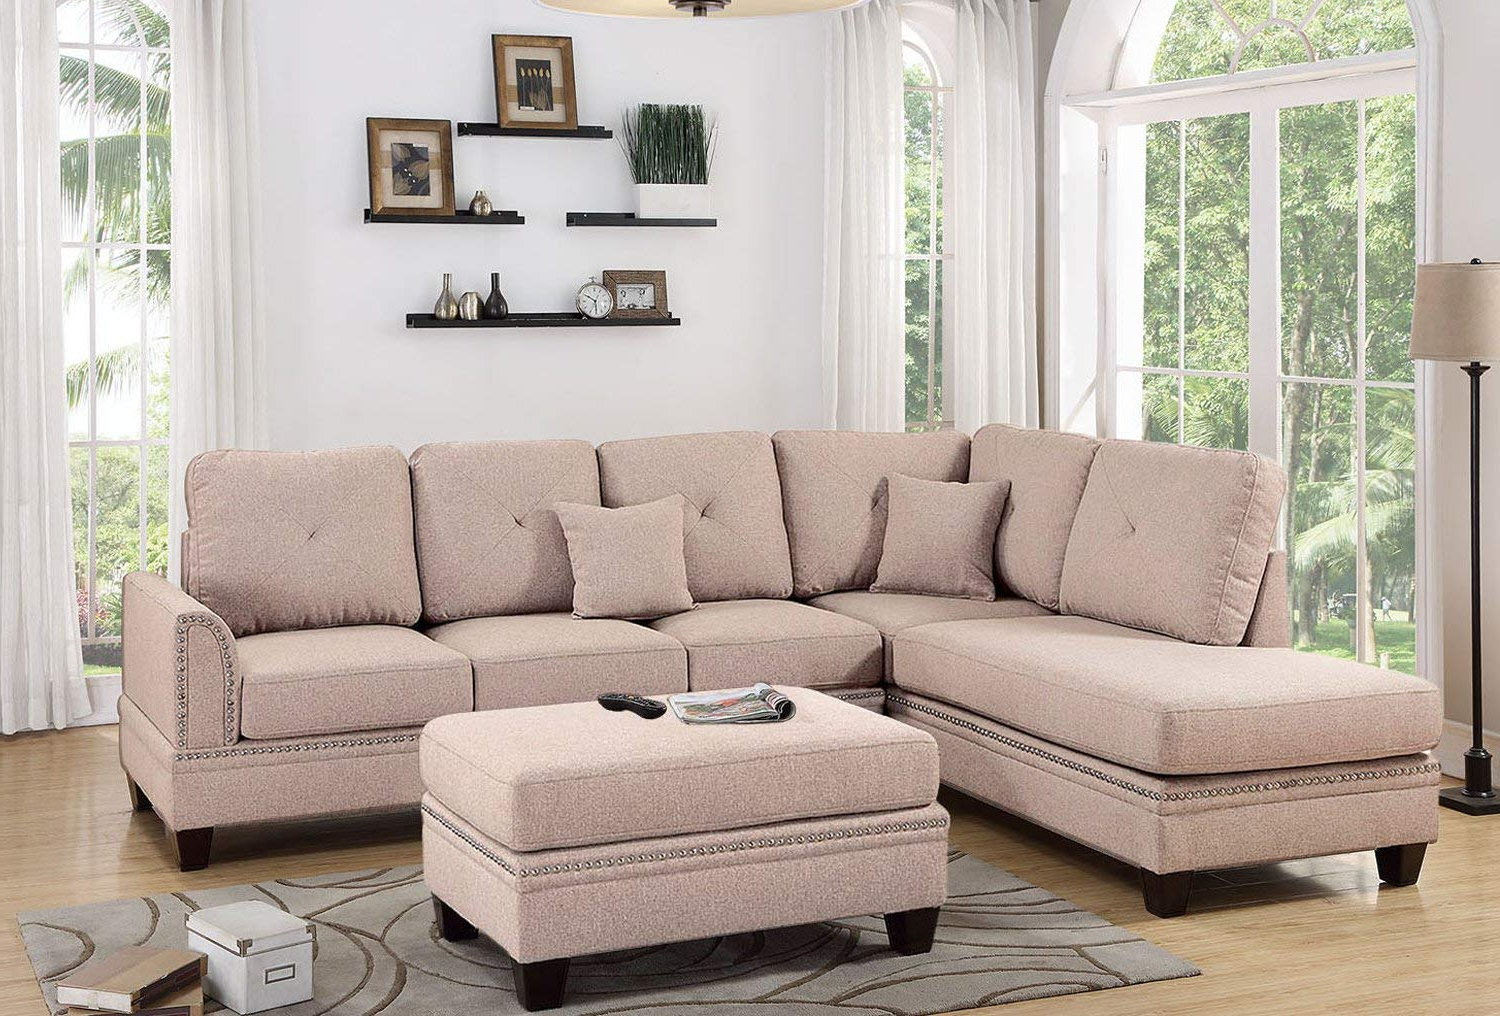 2019 Coffee 2pc Sectional Sofa With Nail Head Trim Accents With 2pc Polyfiber Sectional Sofas With Nailhead Trims Gray (View 15 of 20)